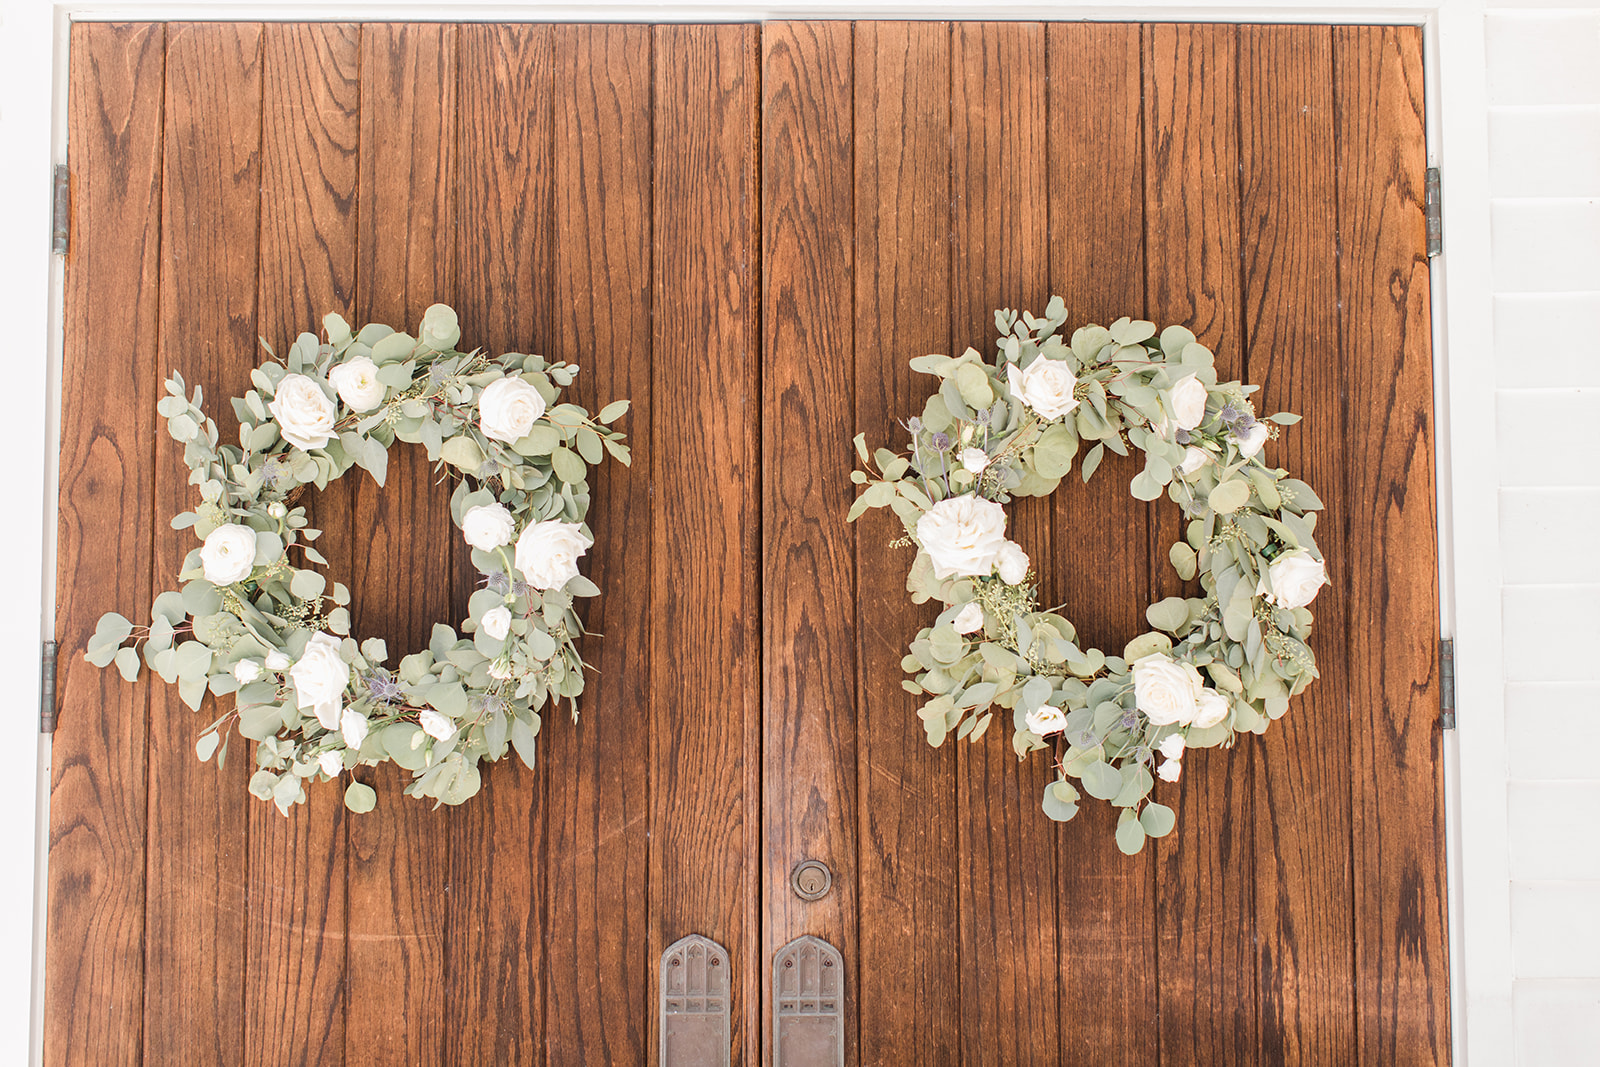 eucalyptus and ivory flower wreaths on doors at St. Francis at the Point